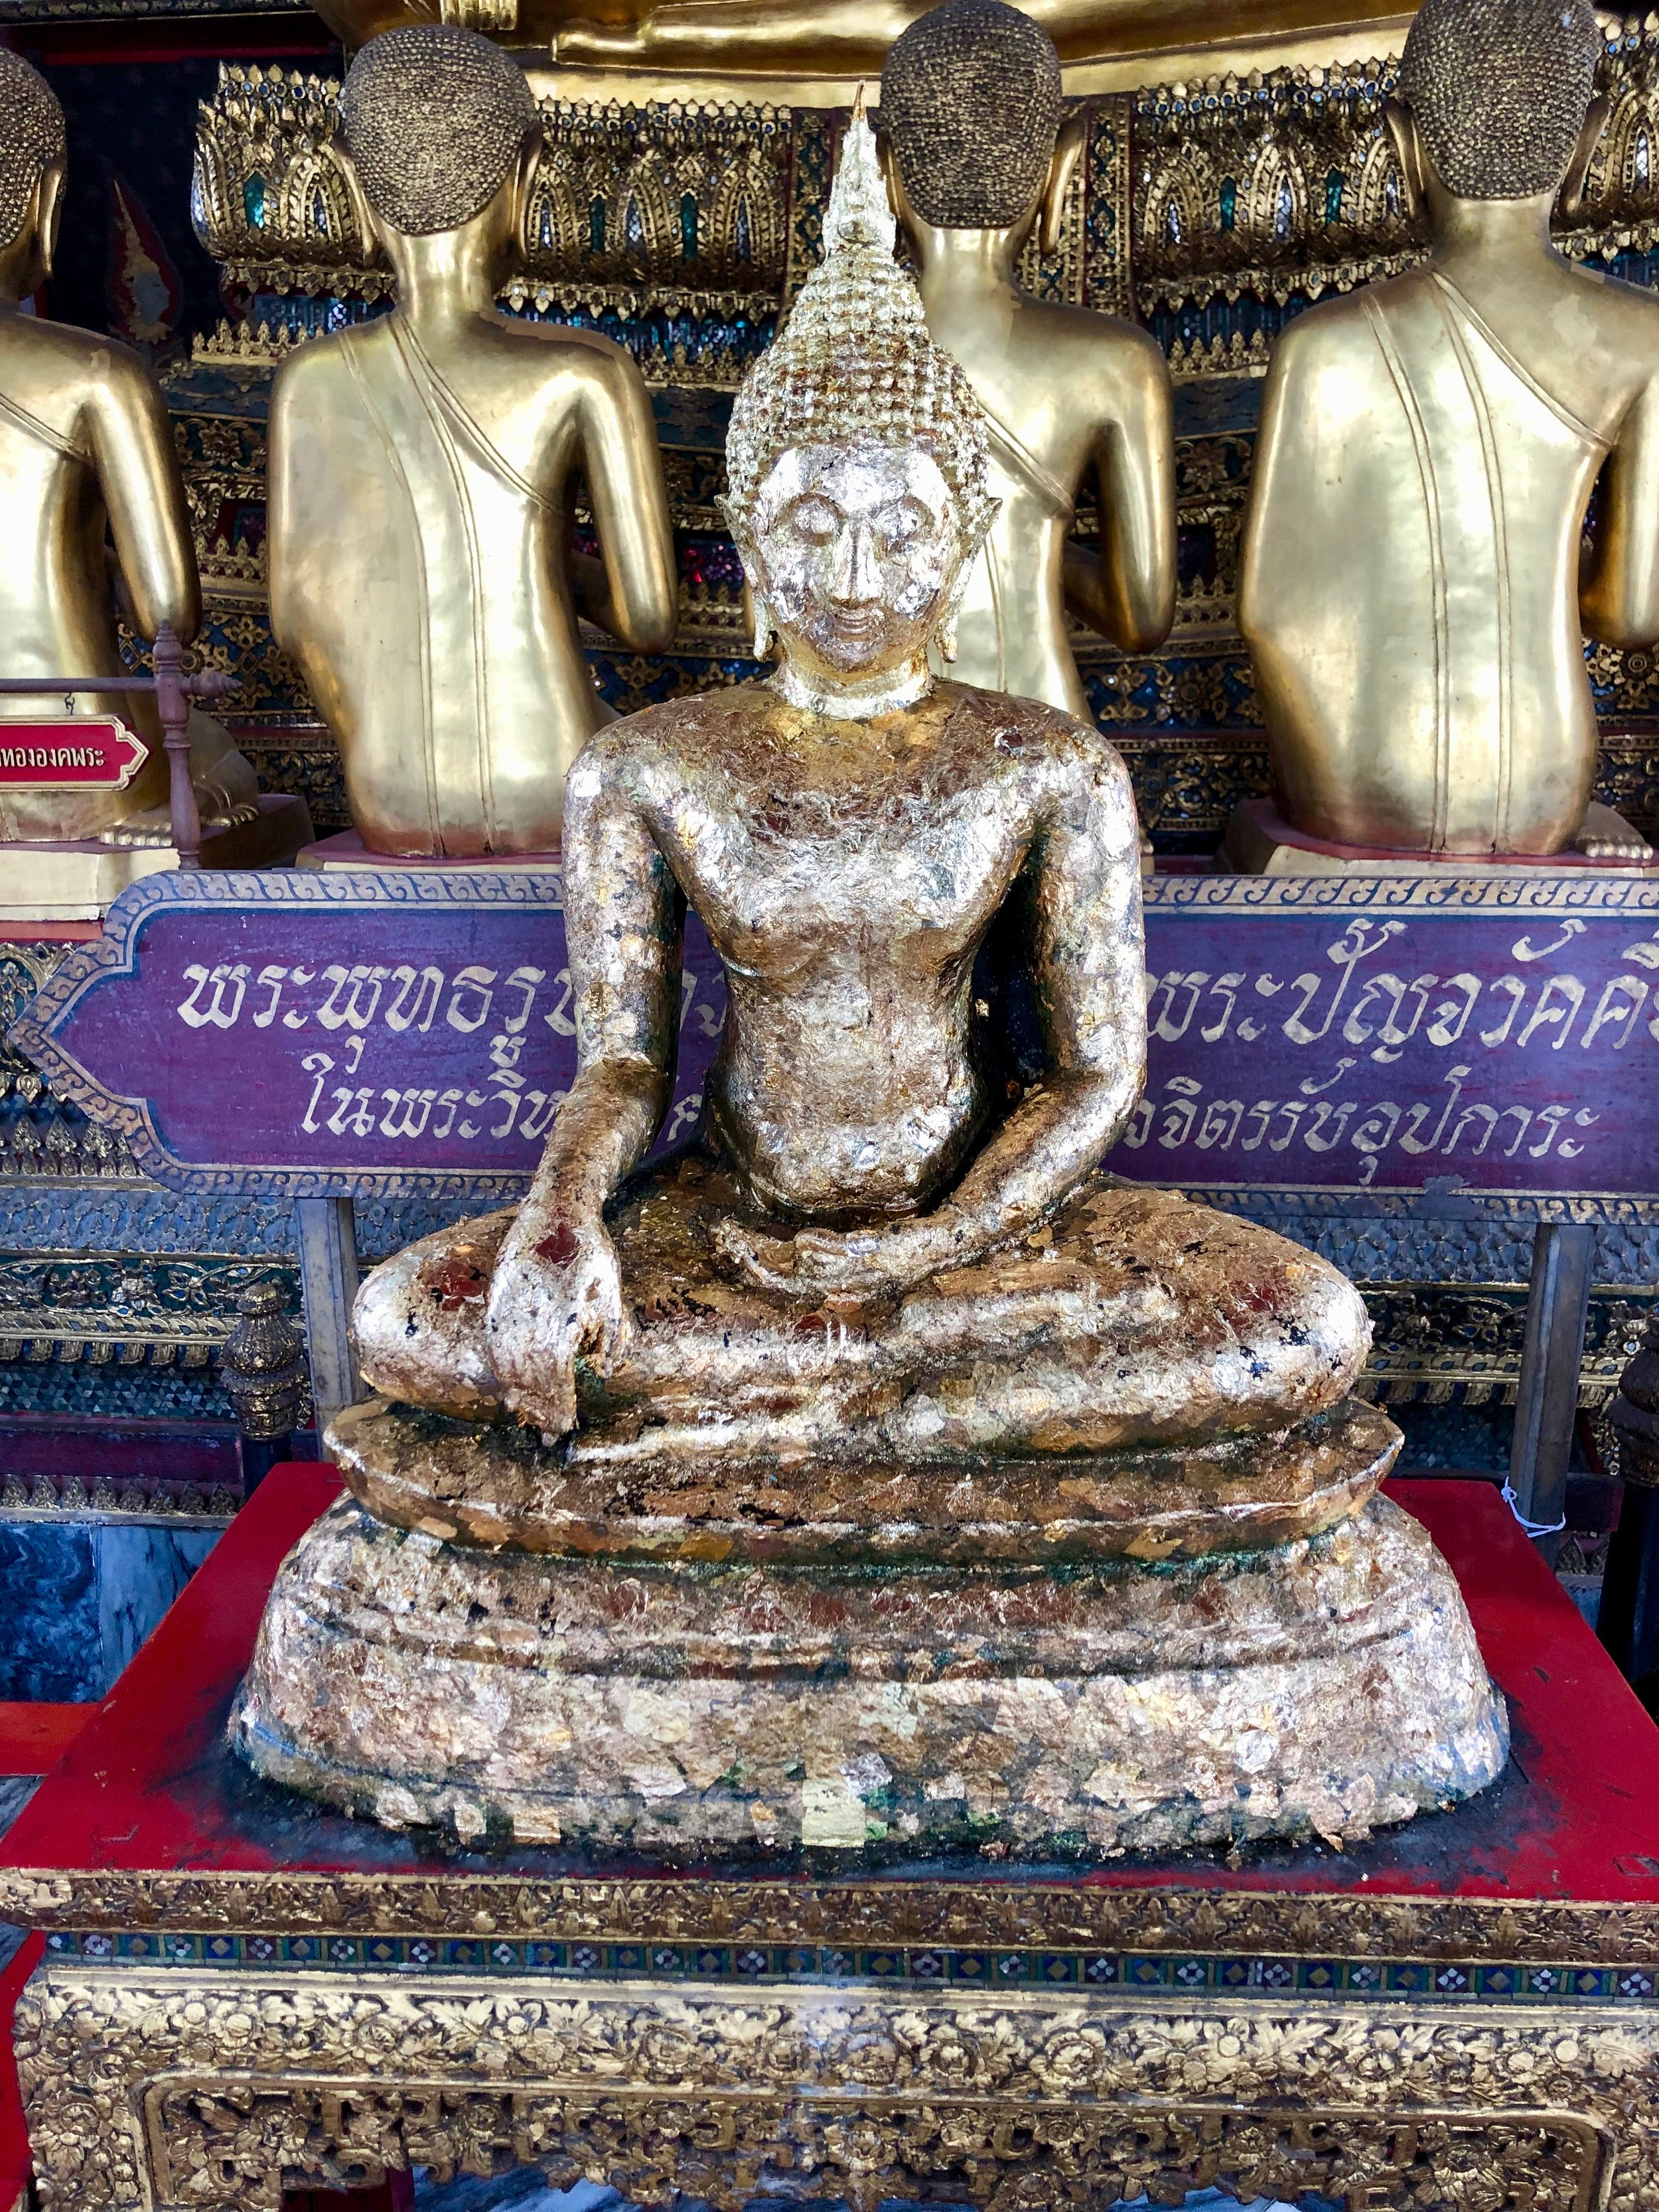 The Buddha's surface is uneven because gold has been pressed onto it by devotees